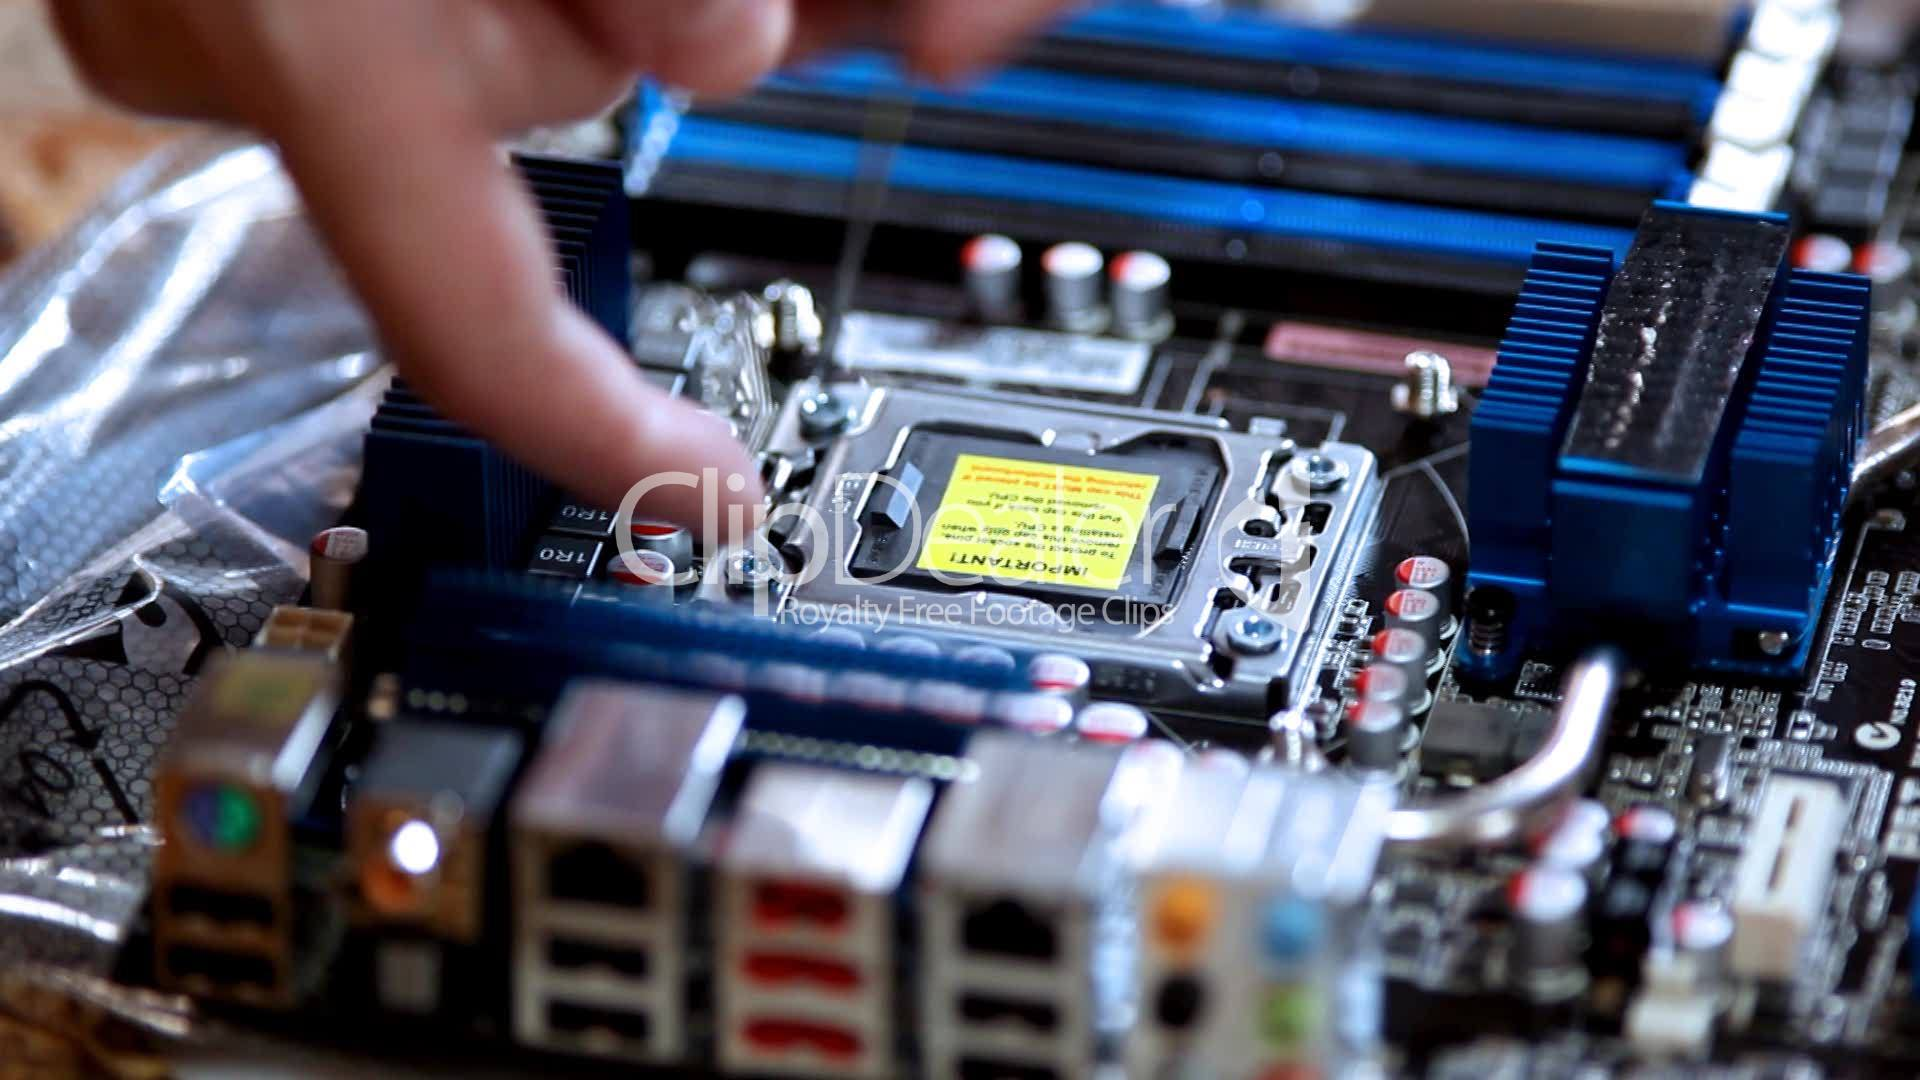 Assembly Computer Install Processor Royalty Free Video